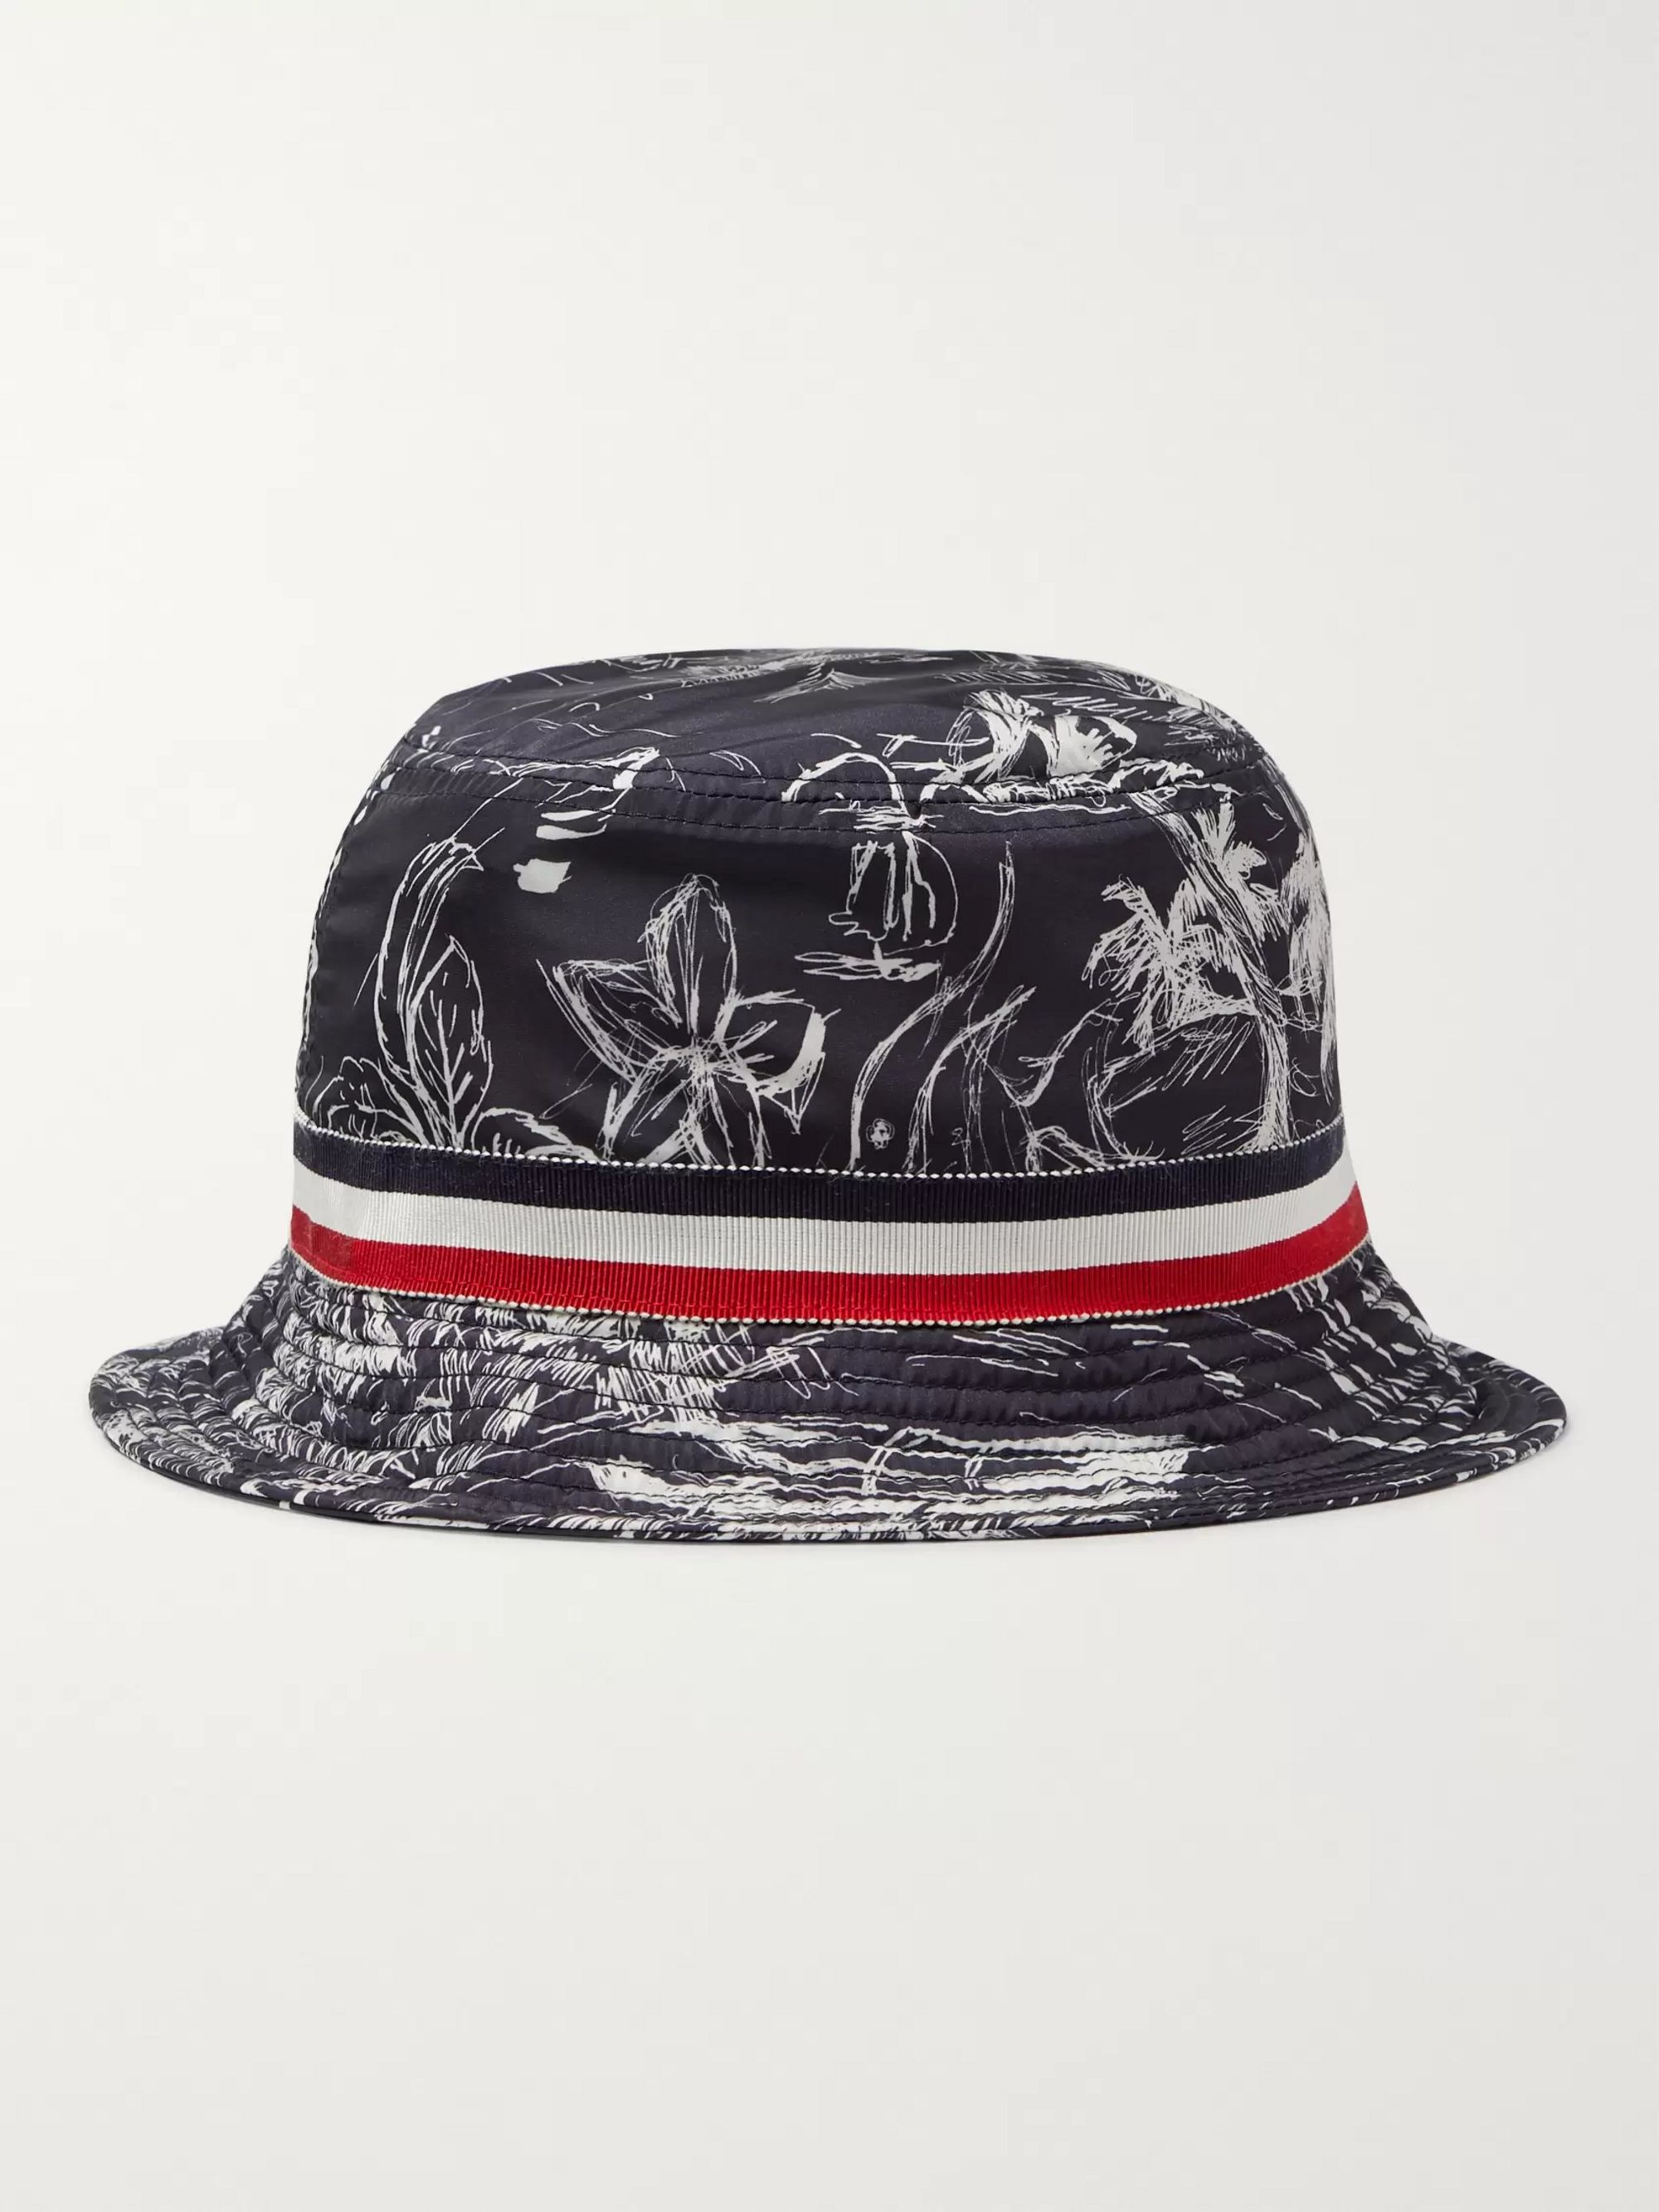 Moncler Grosgrain-Trimmed Printed Shell Bucket Hat